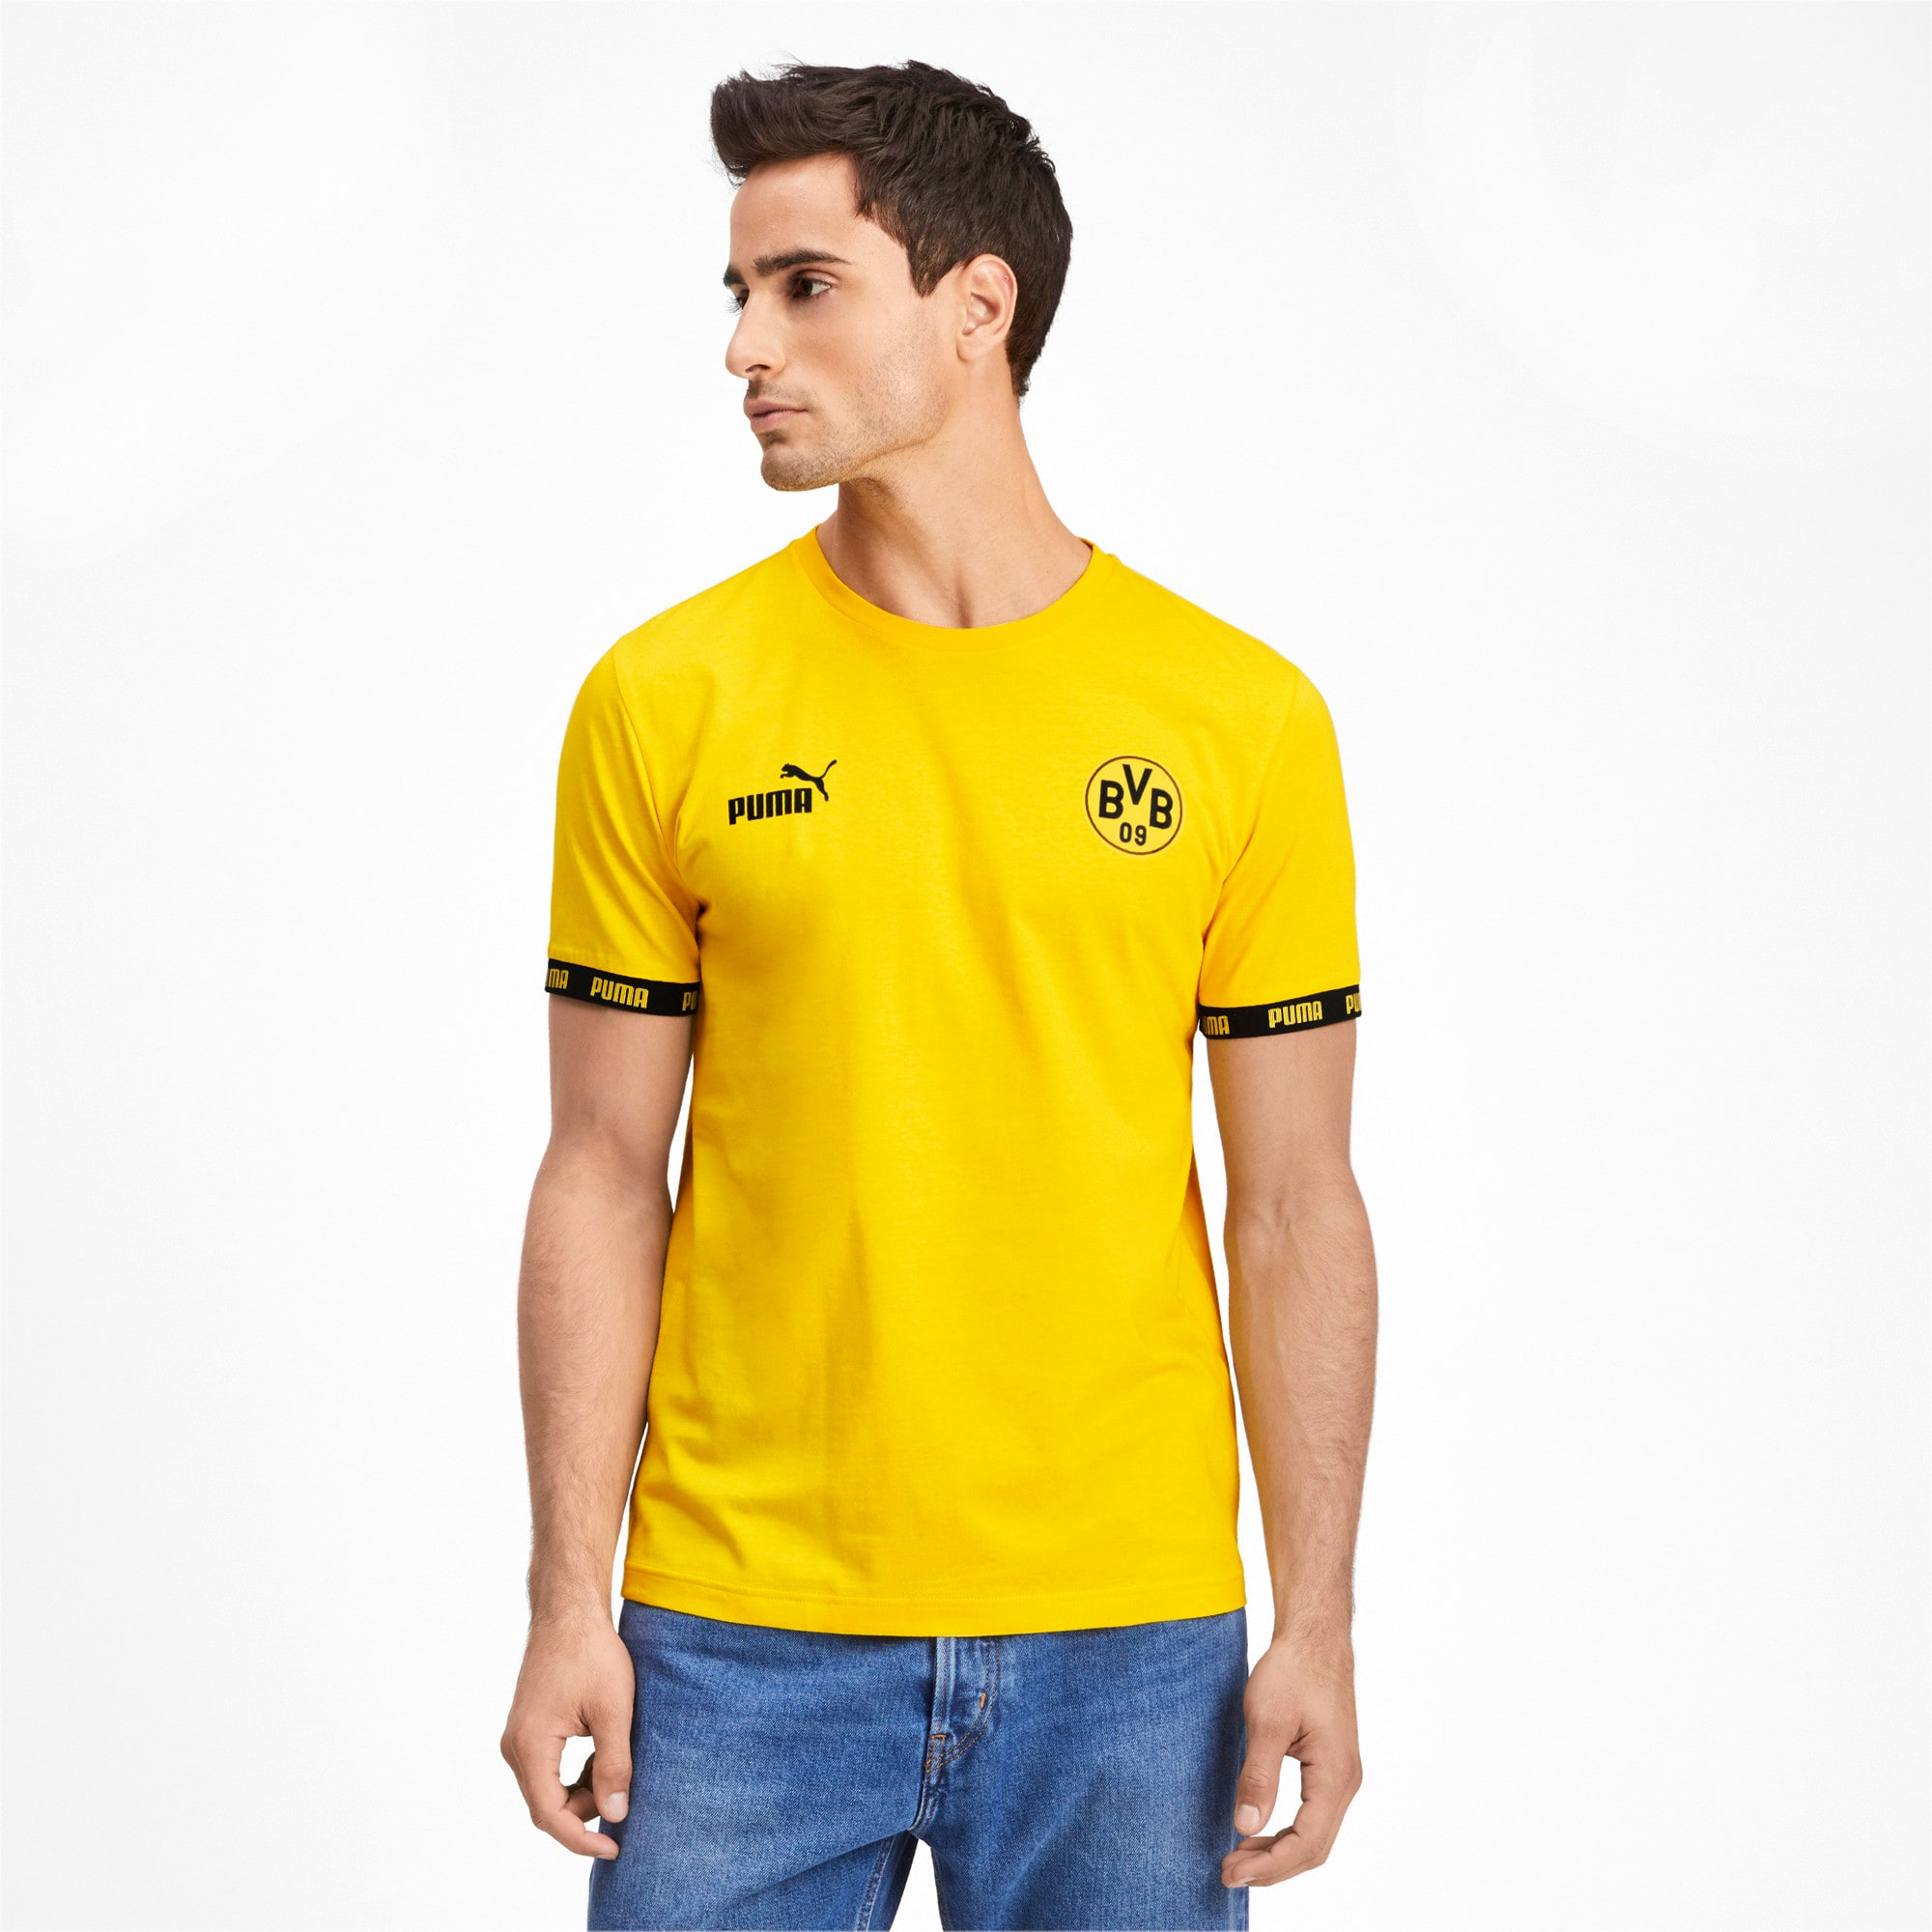 BVB Ftbl Culture Men's Tee, Cyber Yellow, large